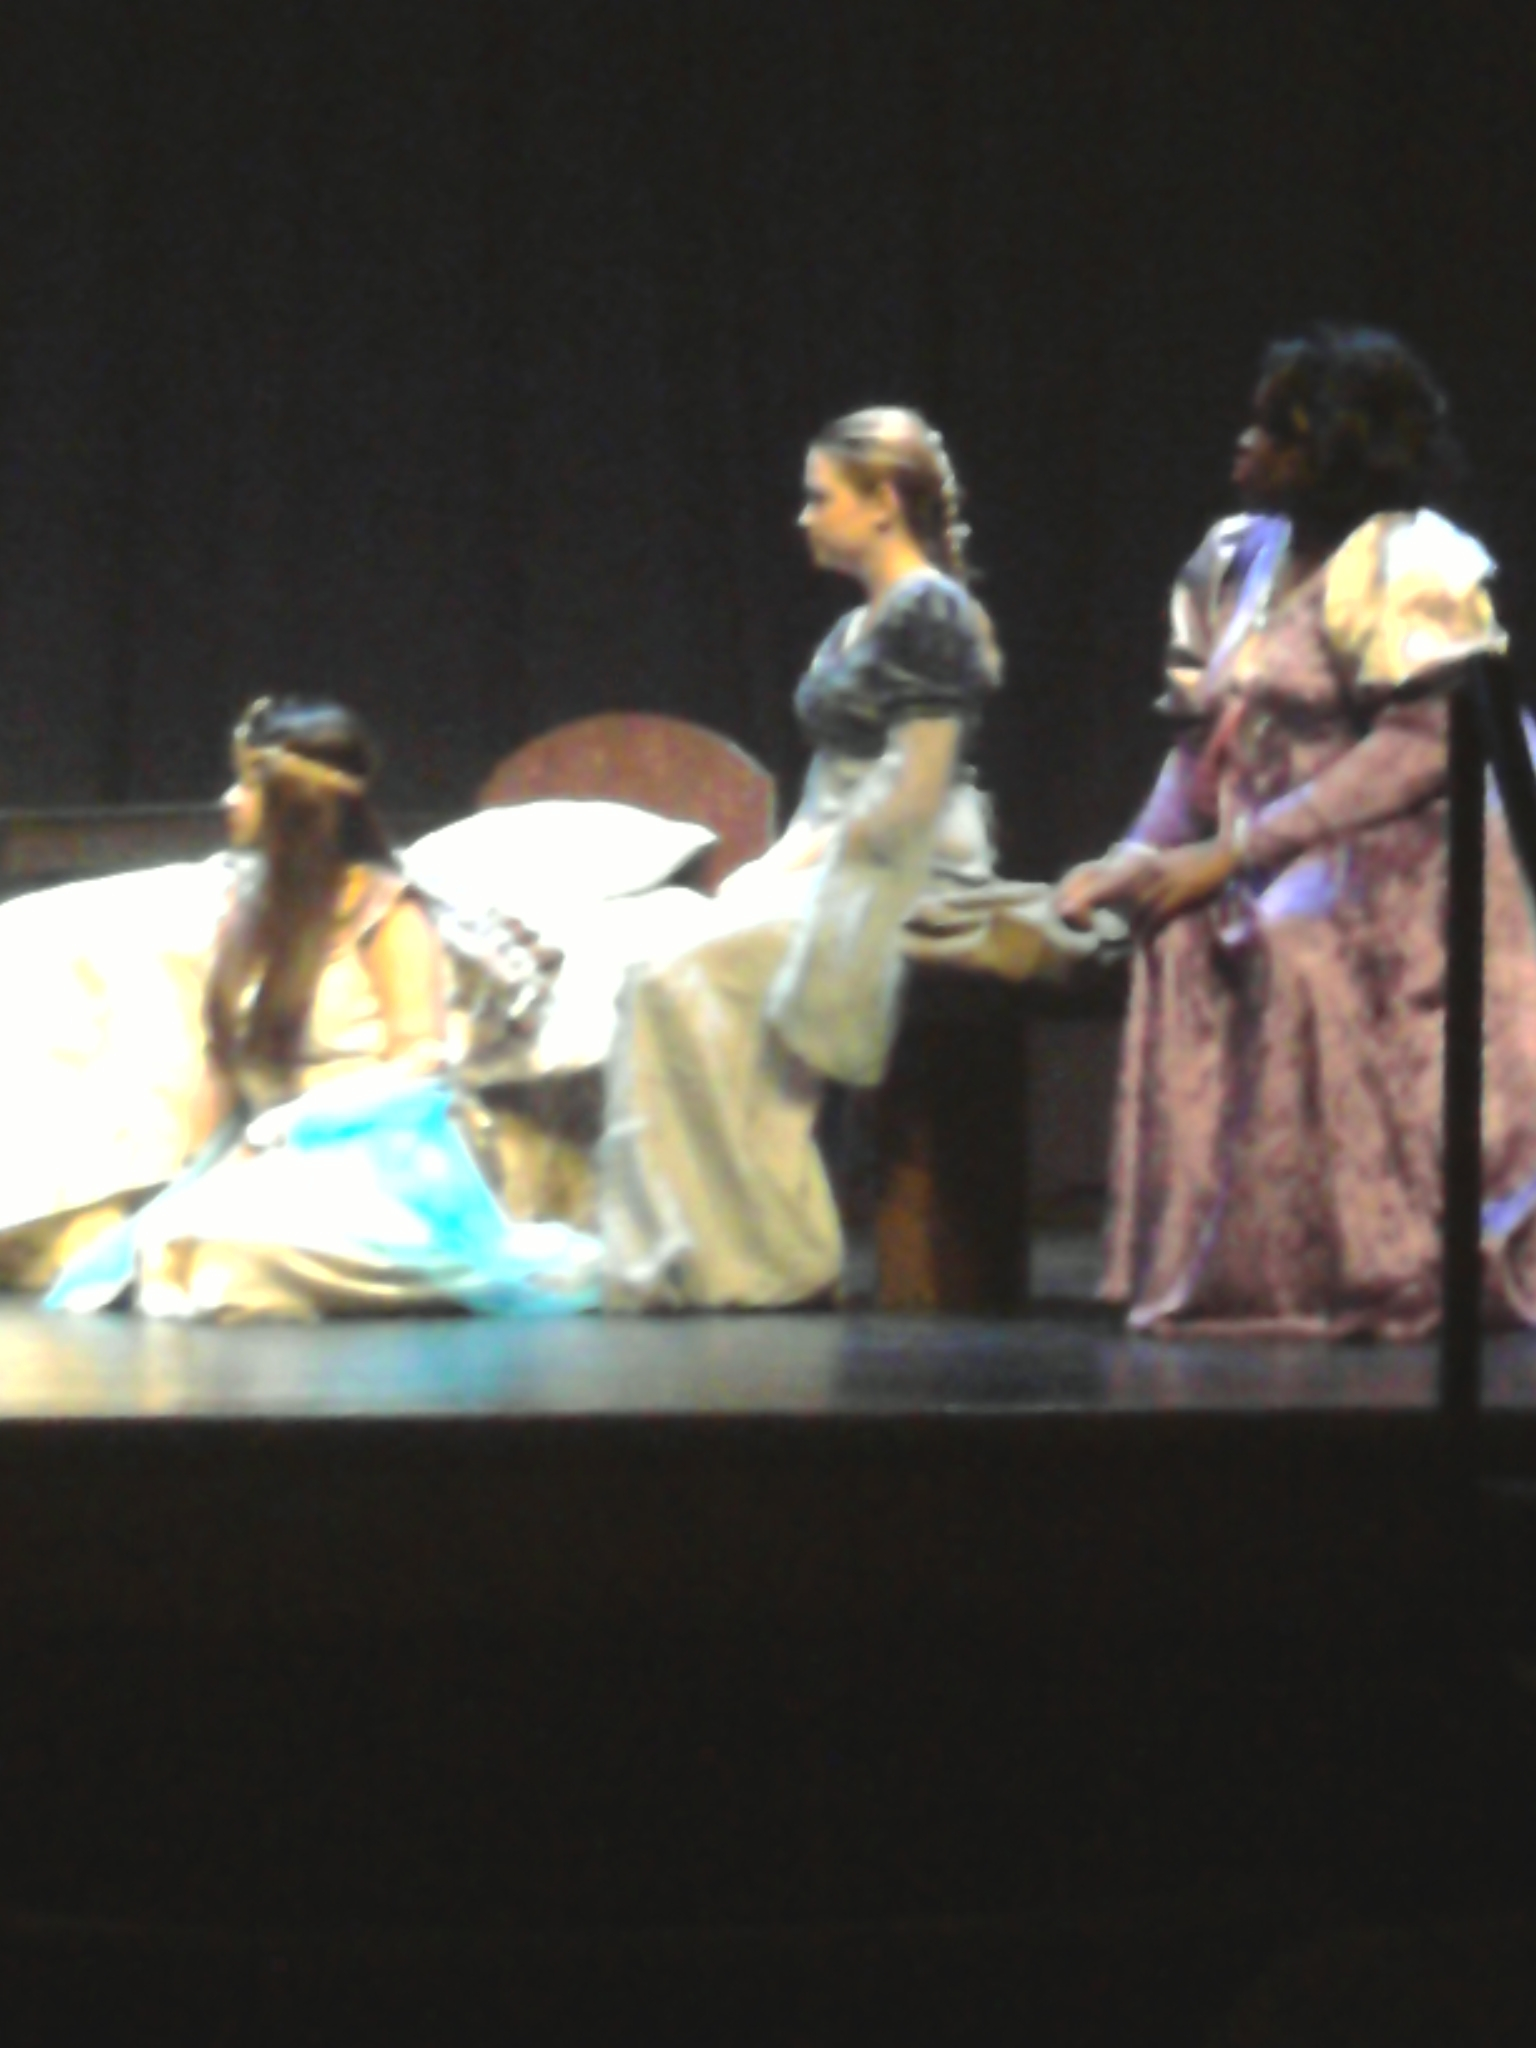 Jenan Fatfat played Cleopatra in While Shakespeare Slept. She also played Mrs. Beaver in the fall play The Lion, The Witch and The Wardrobe.